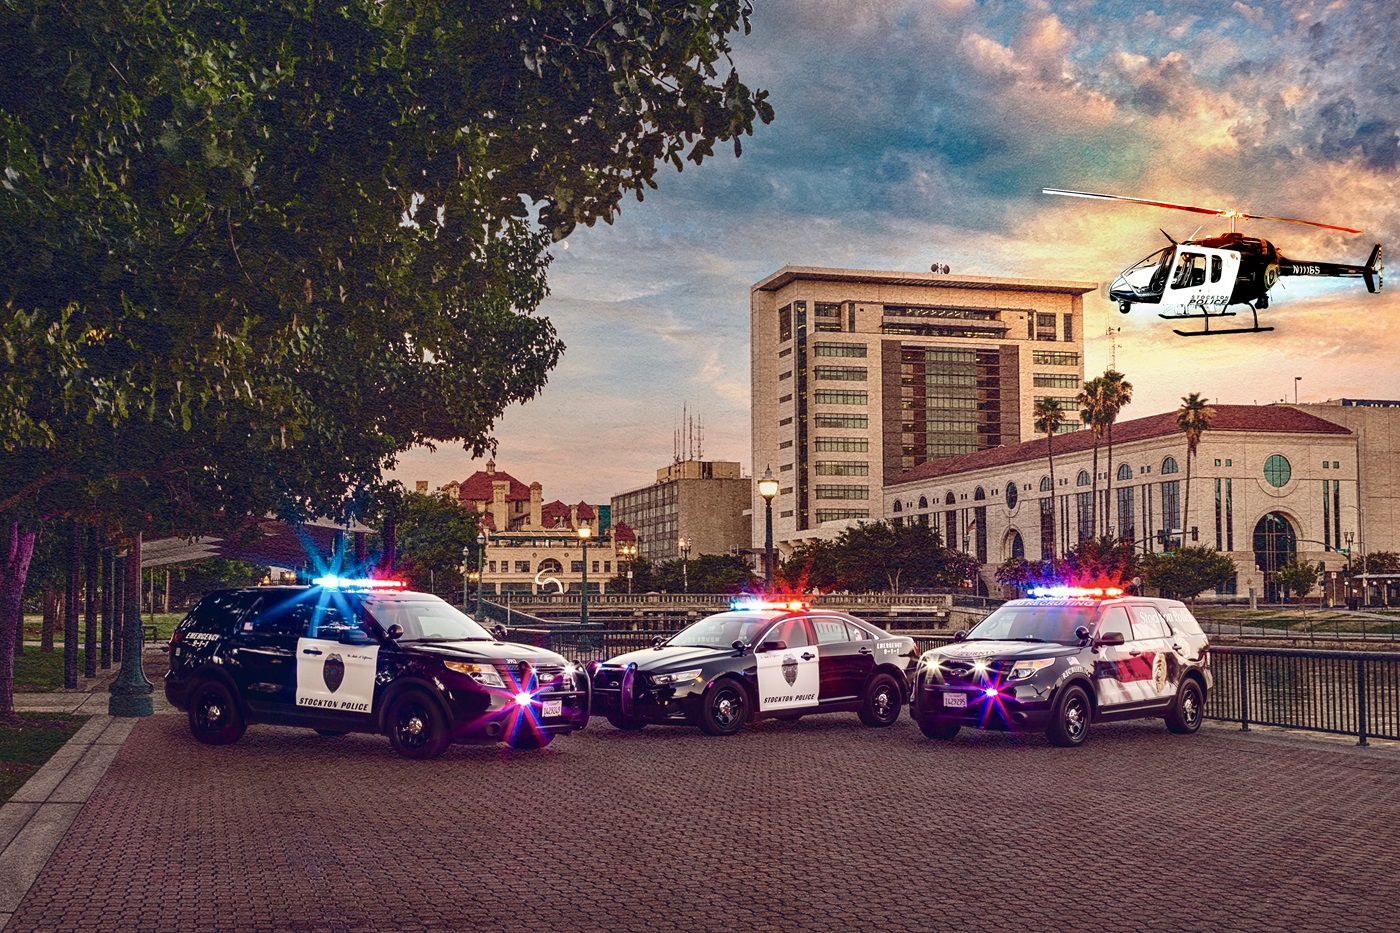 SPD Vehicles at Weber Point Events Center